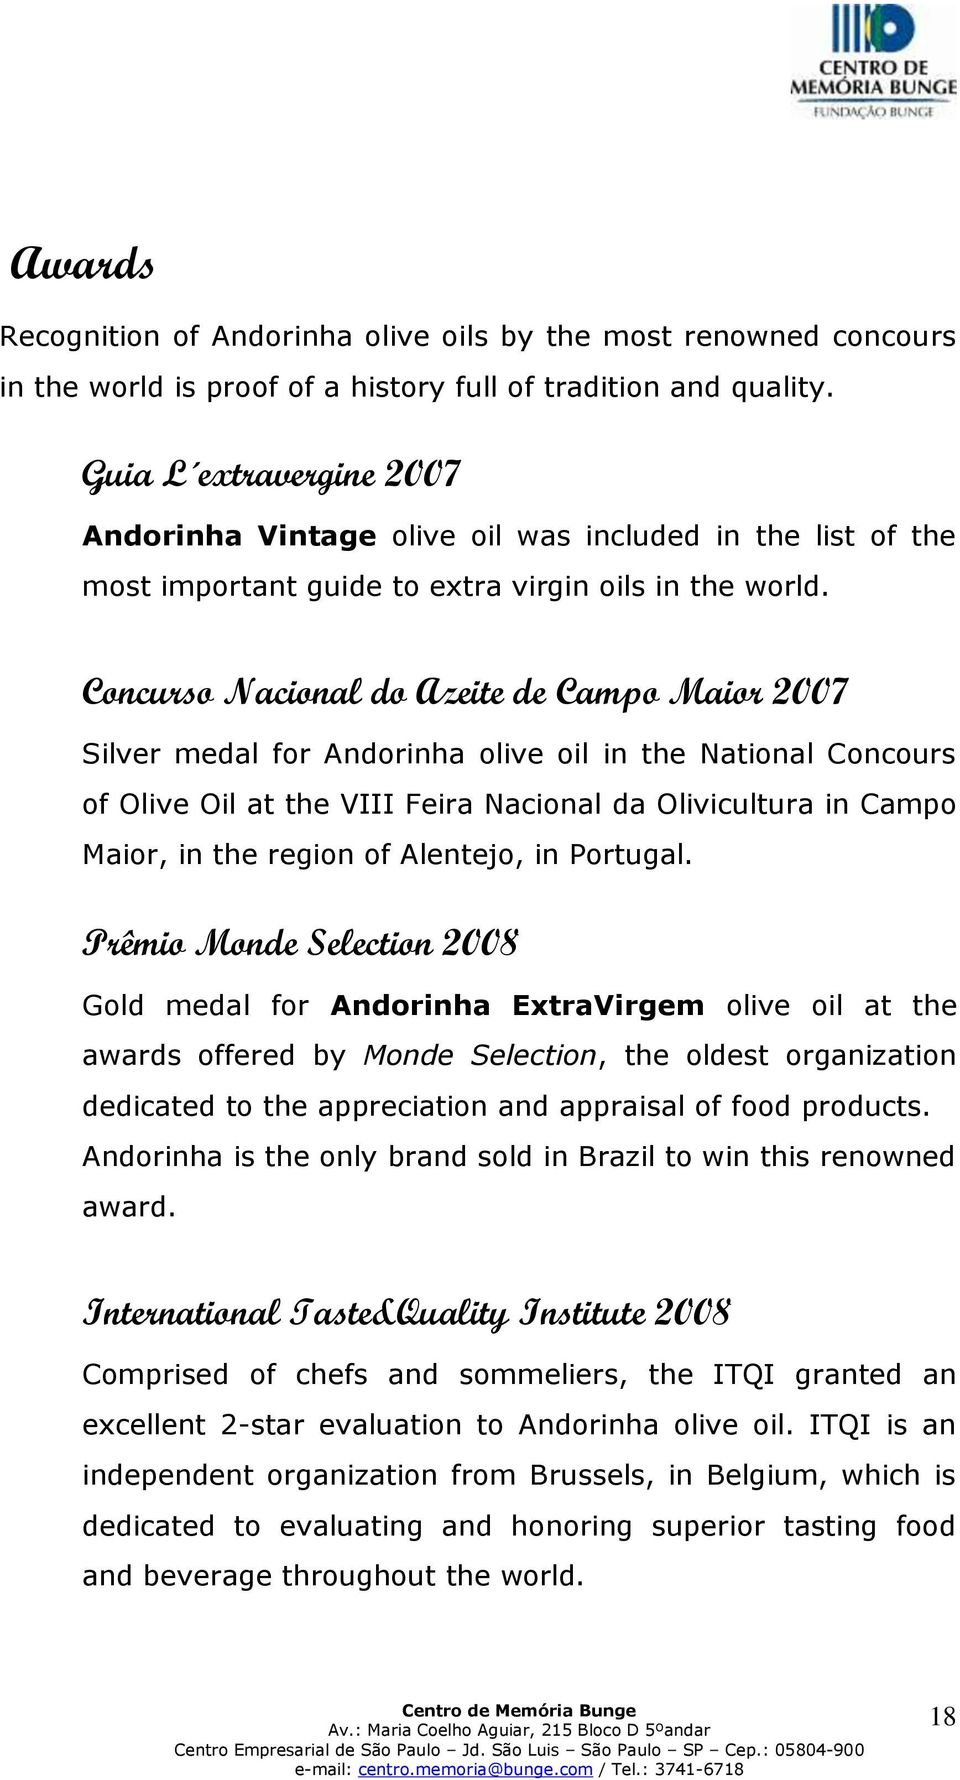 Concurso Nacional do Azeite de Campo Maior 2007 Silver medal for Andorinha olive oil in the National Concours of Olive Oil at the VIII Feira Nacional da Olivicultura in Campo Maior, in the region of